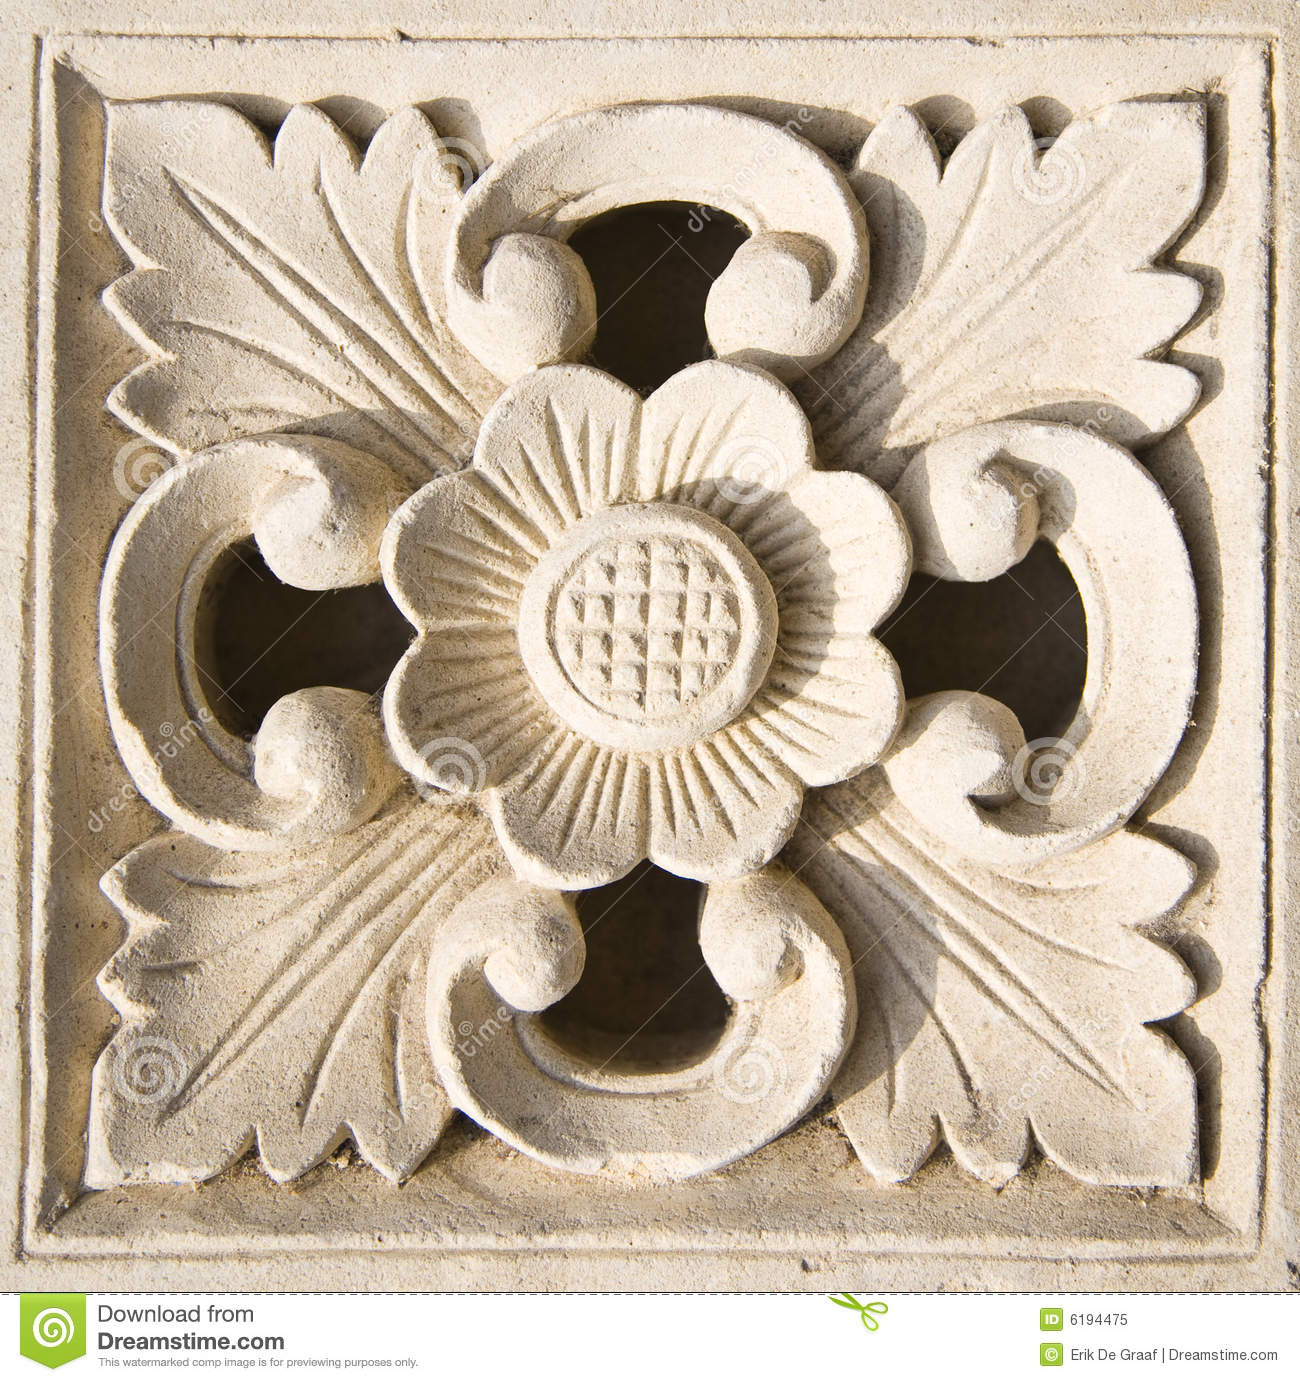 Bali stone carving royalty free stock photo image